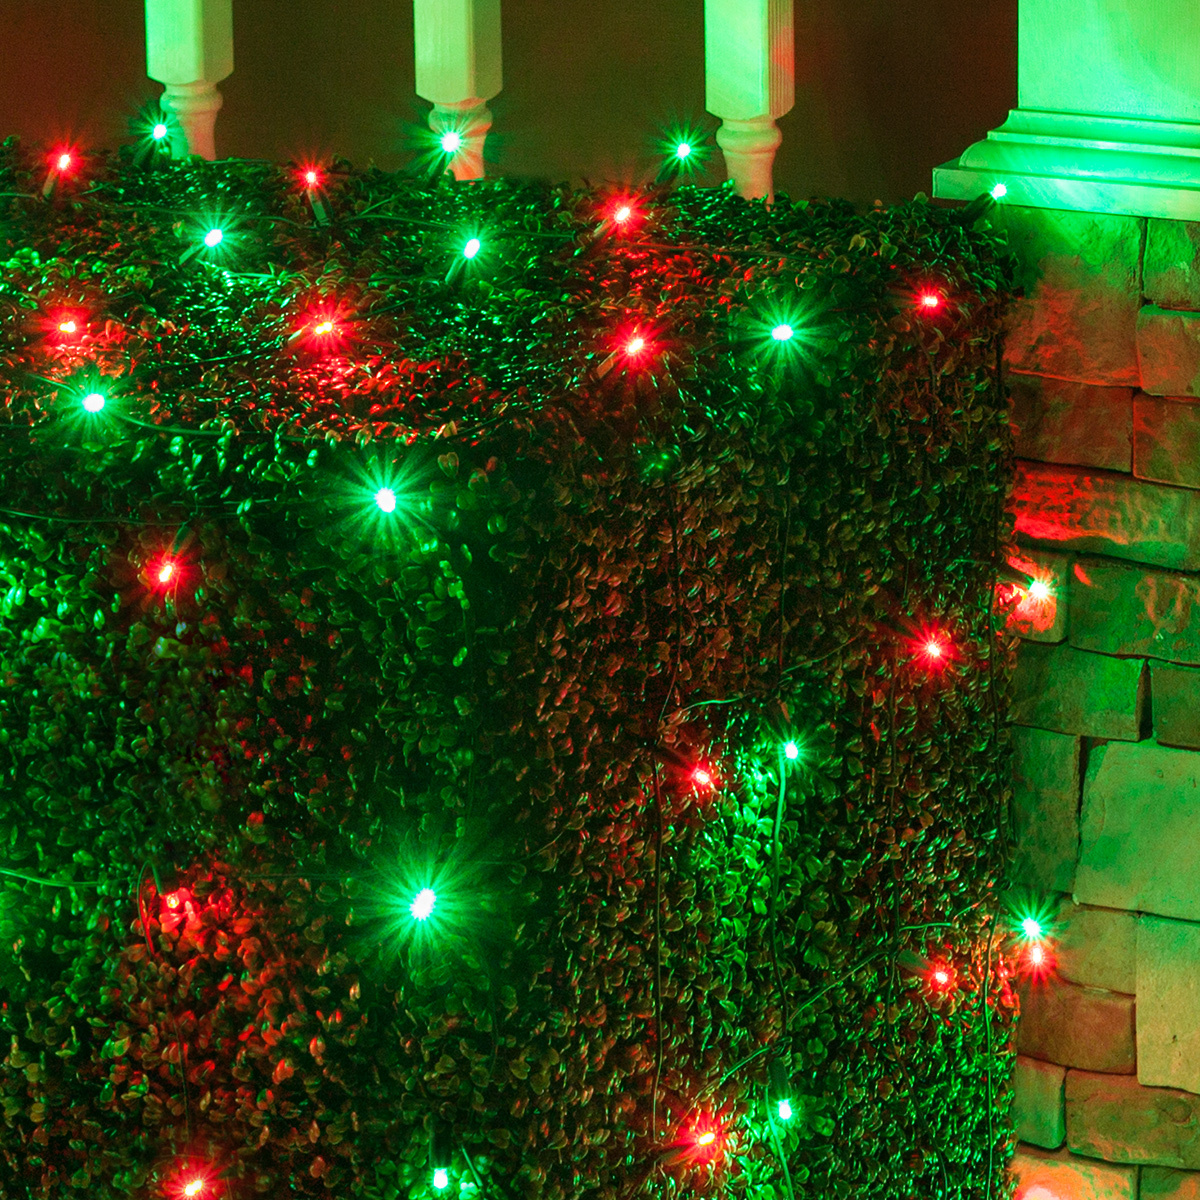 Green Christmas Lights.Wintergreen Lighting Red Green Led Net Lights Christmas Net Lights 100 5mm Lights 4 X6 Net Energy Star Rated